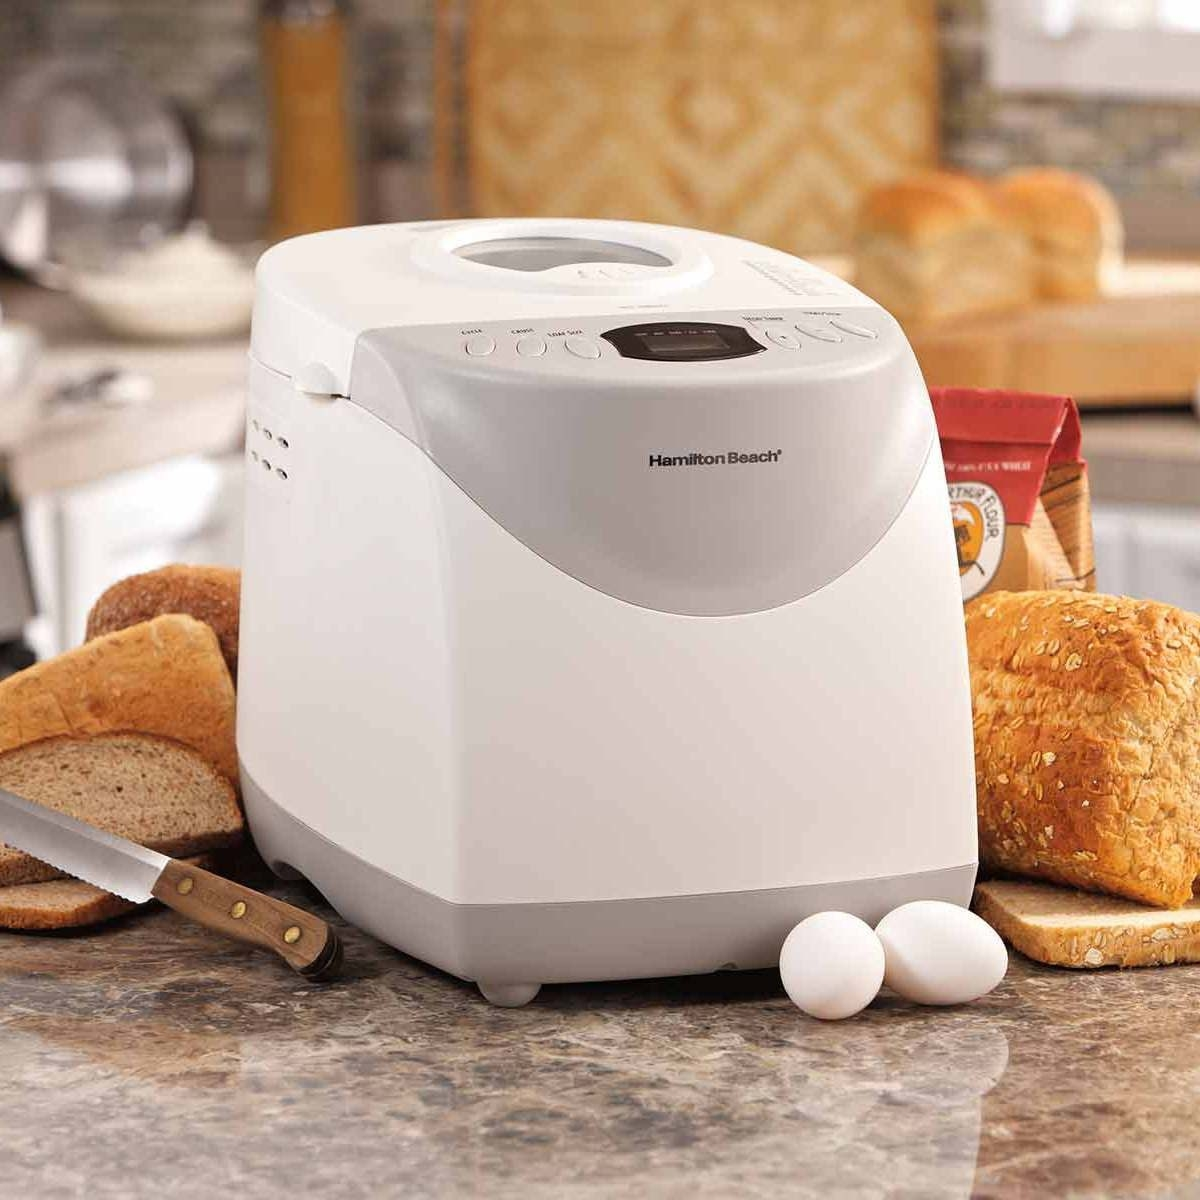 The bread maker, shown on a countertop with bread